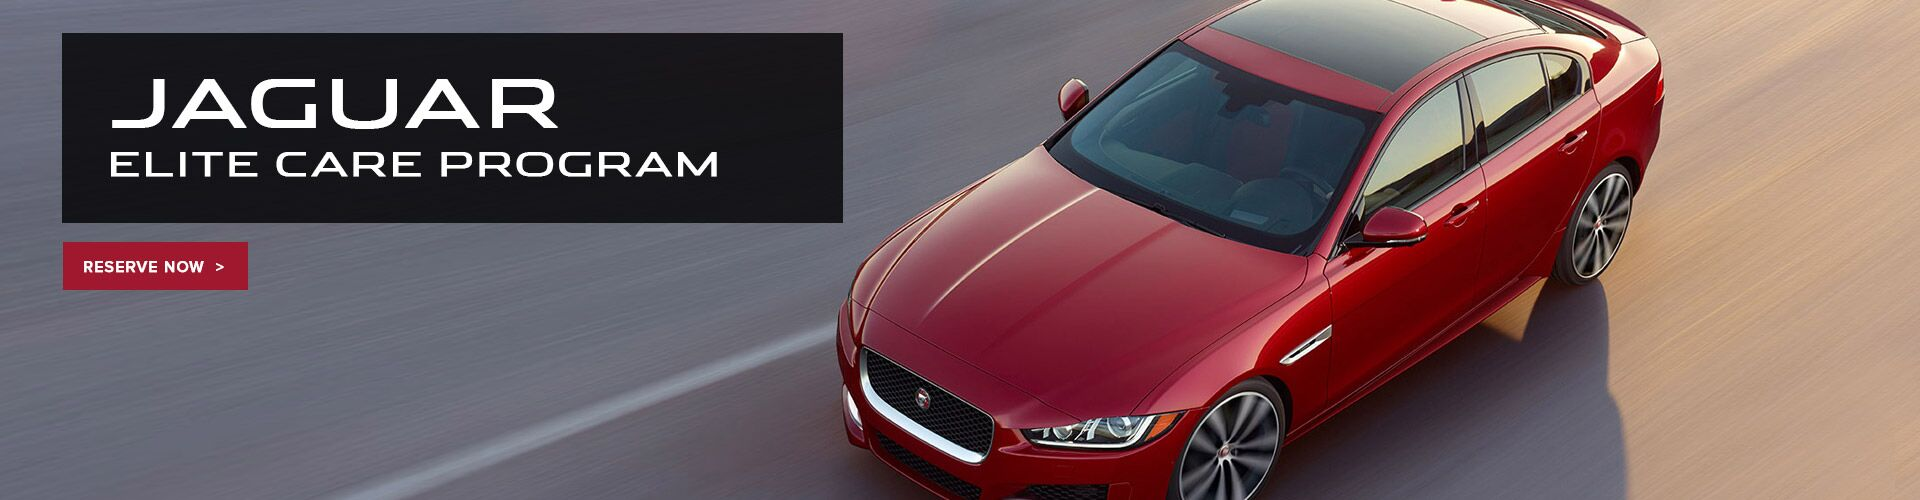 Jaguar Elite Care Program